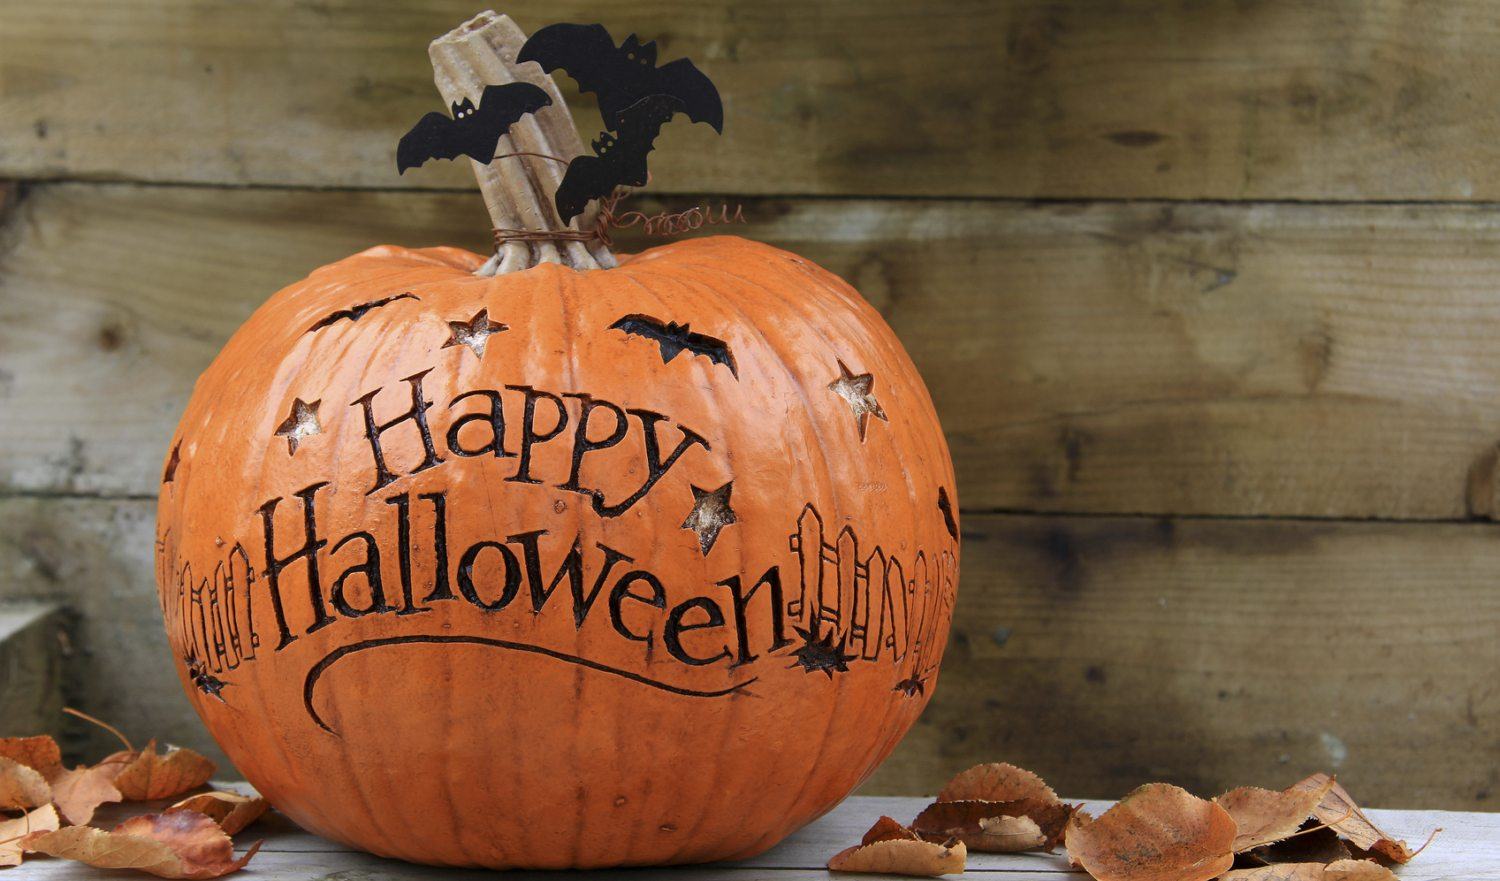 Don't Make Your Pumpkins Go Under the Knife! Easy No-Carve Pumpkin Ideas for Halloween